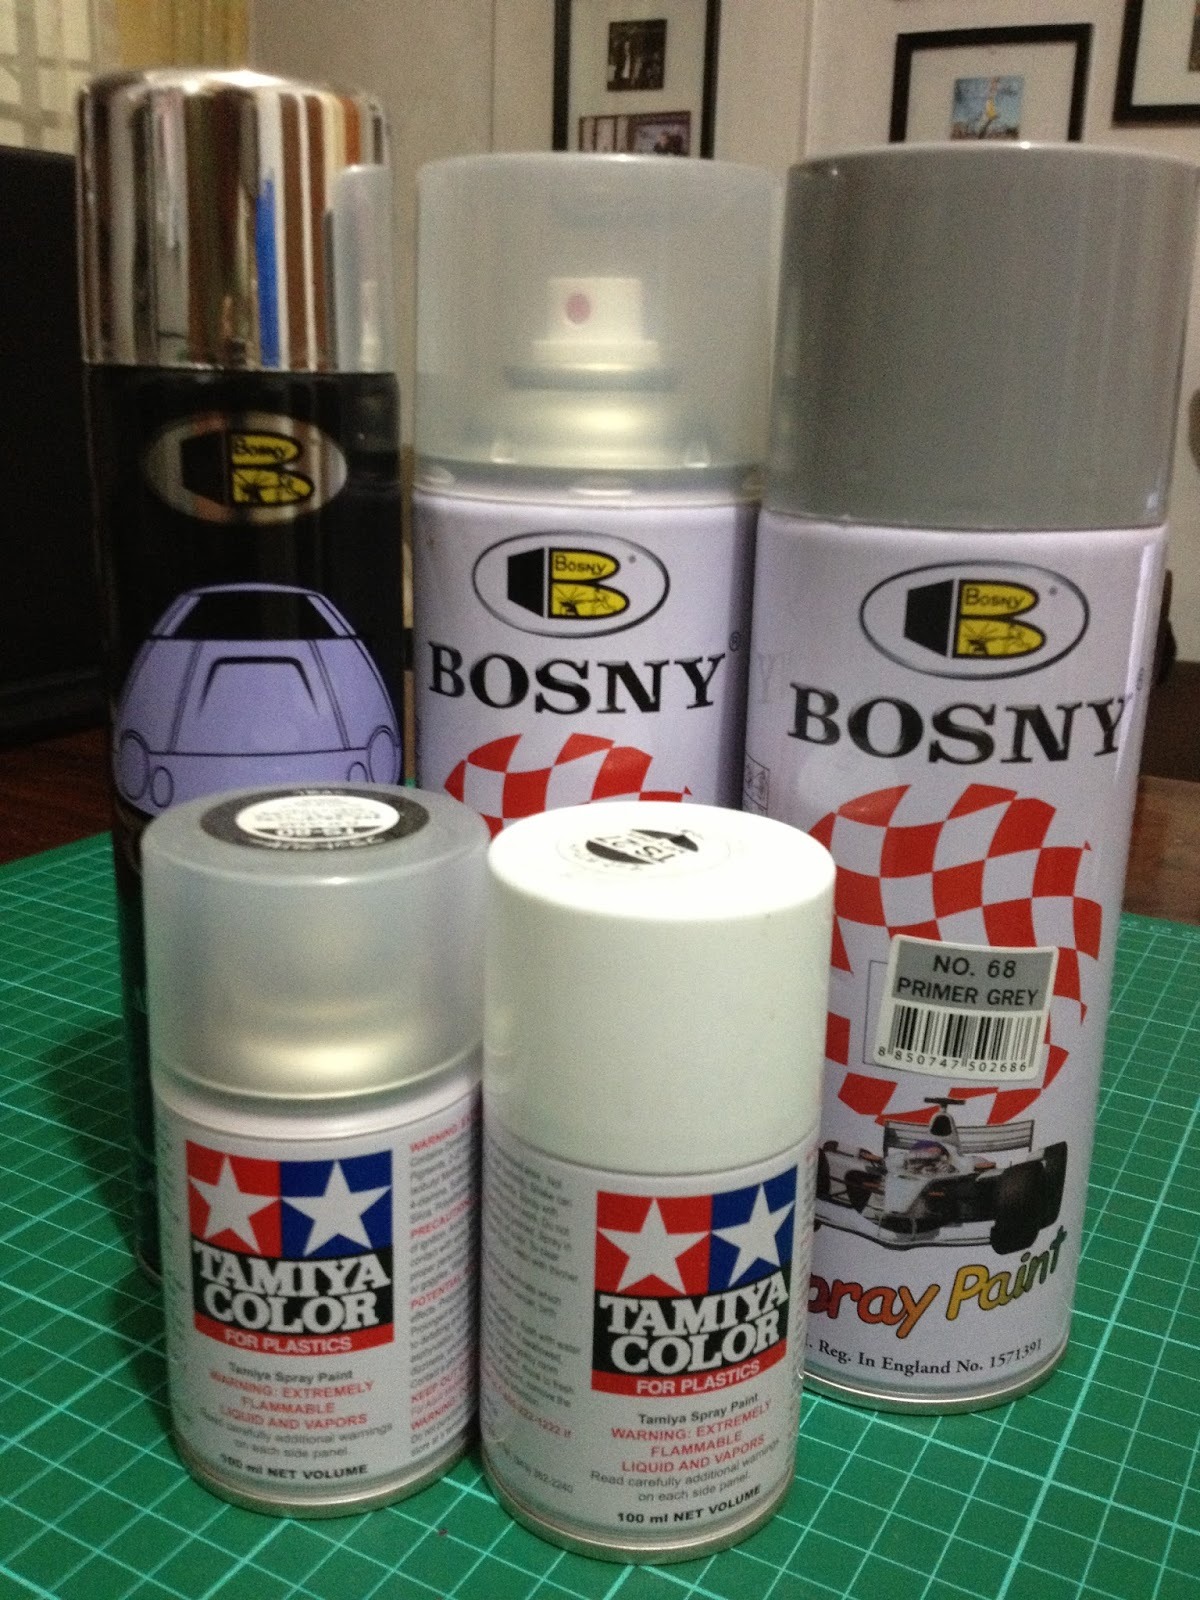 Pinoy gunpla modeler best practices when painting plamo using spray cans Paint with spray can